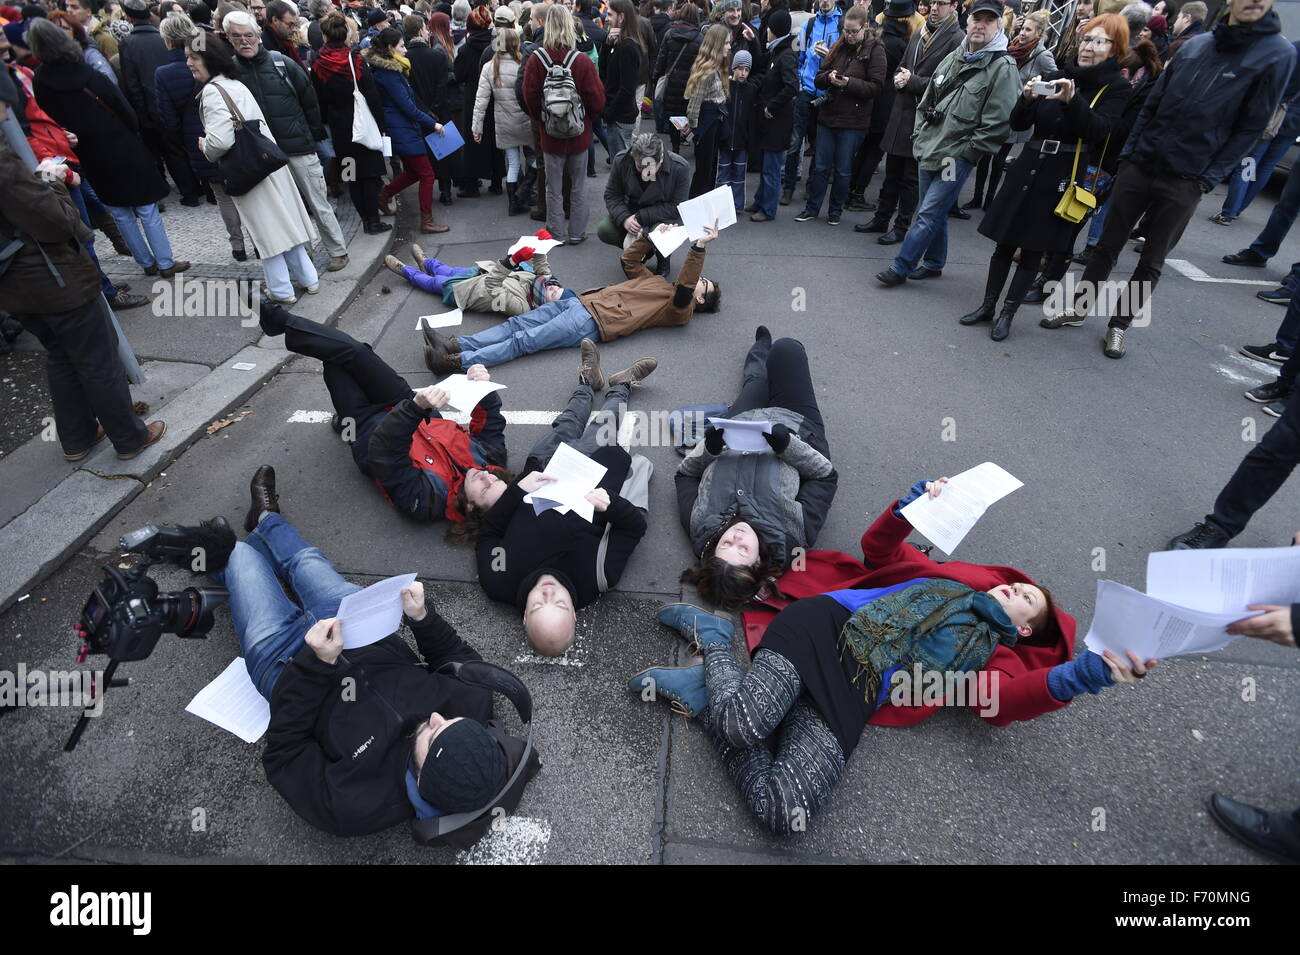 University students and other people met at Prague-Albertov to mark the November 17, 1939 and 1989 anniversaries - Stock Image